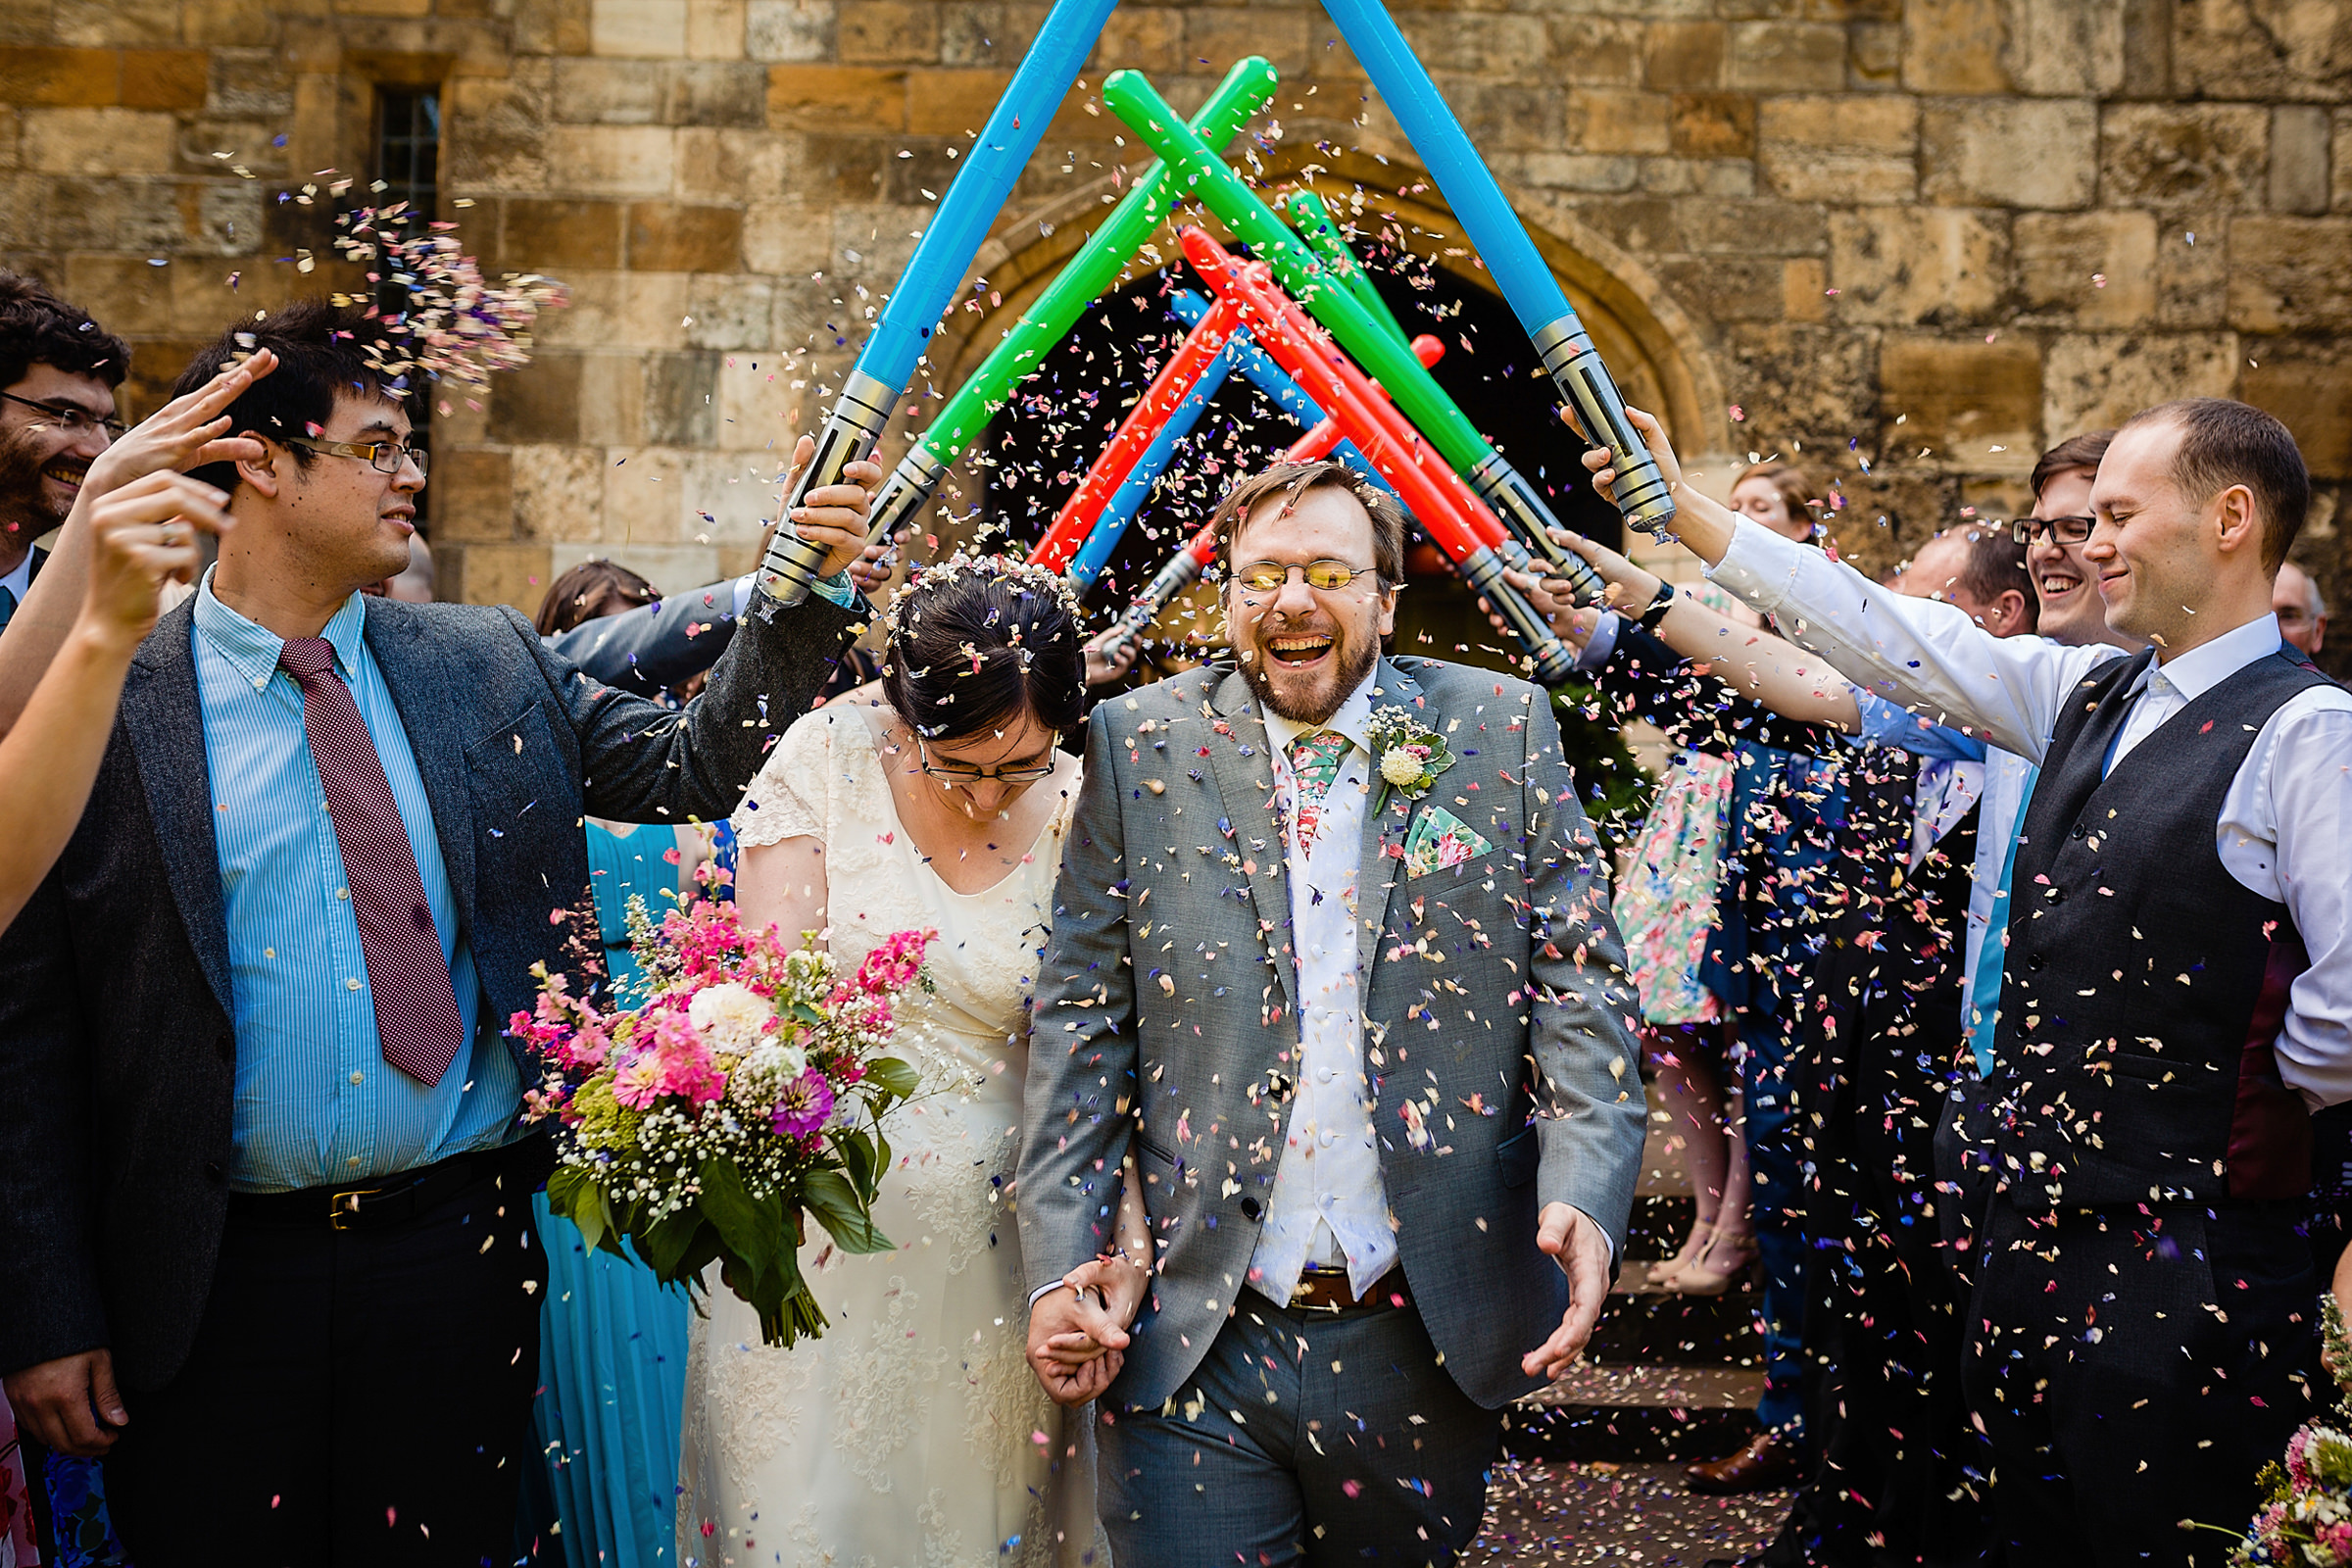 Couple exits church under arch of light sabers - photo by Emma + Rich